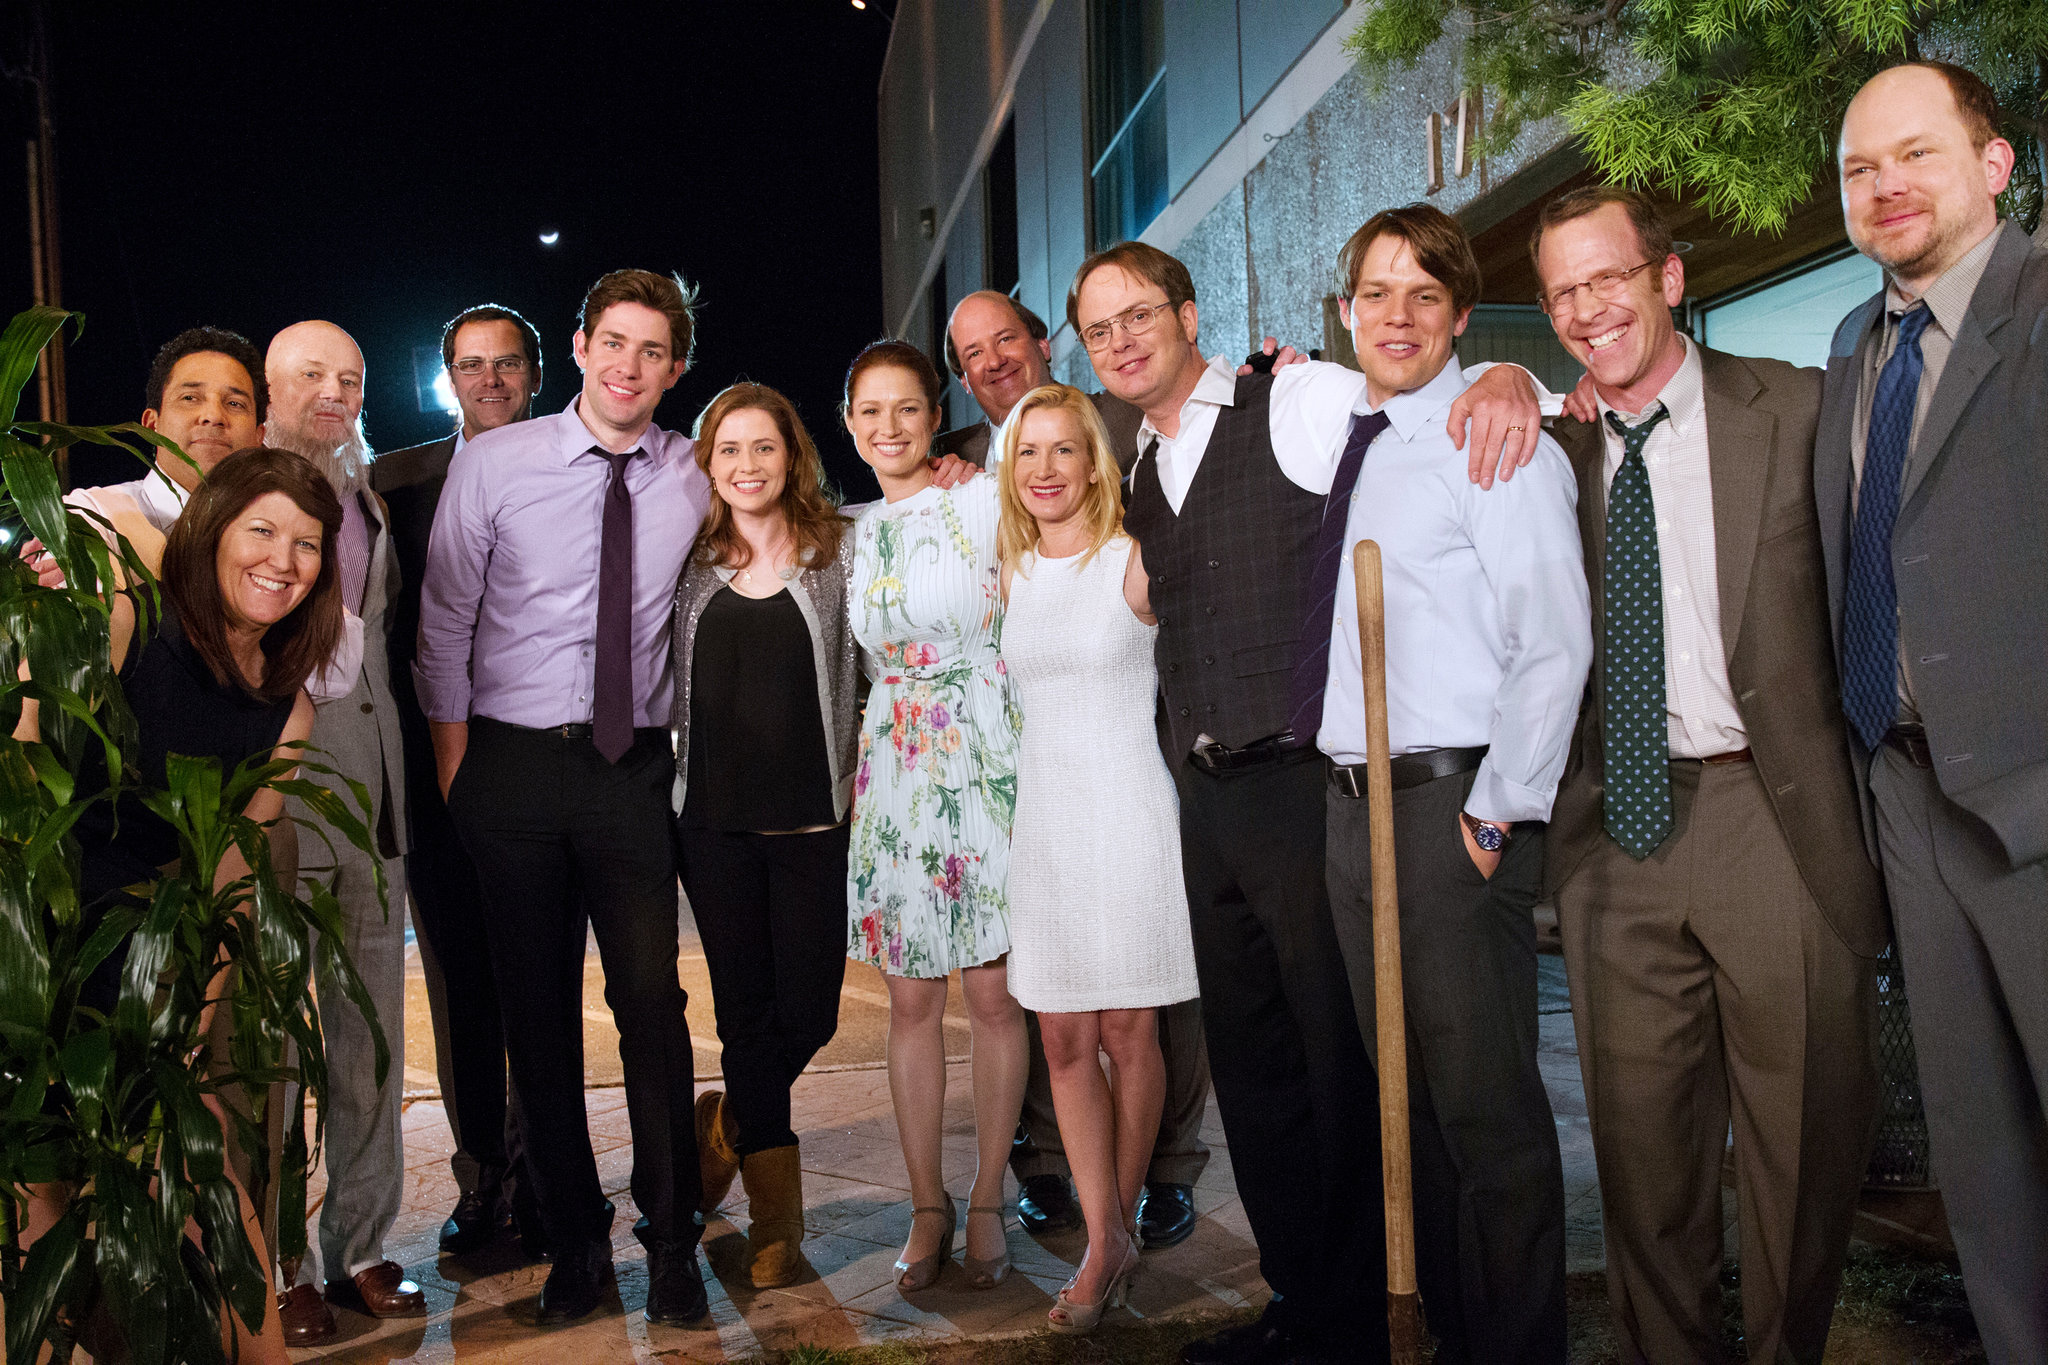 Most of the cast of The Office's Finale episode. Image via  NYTimes